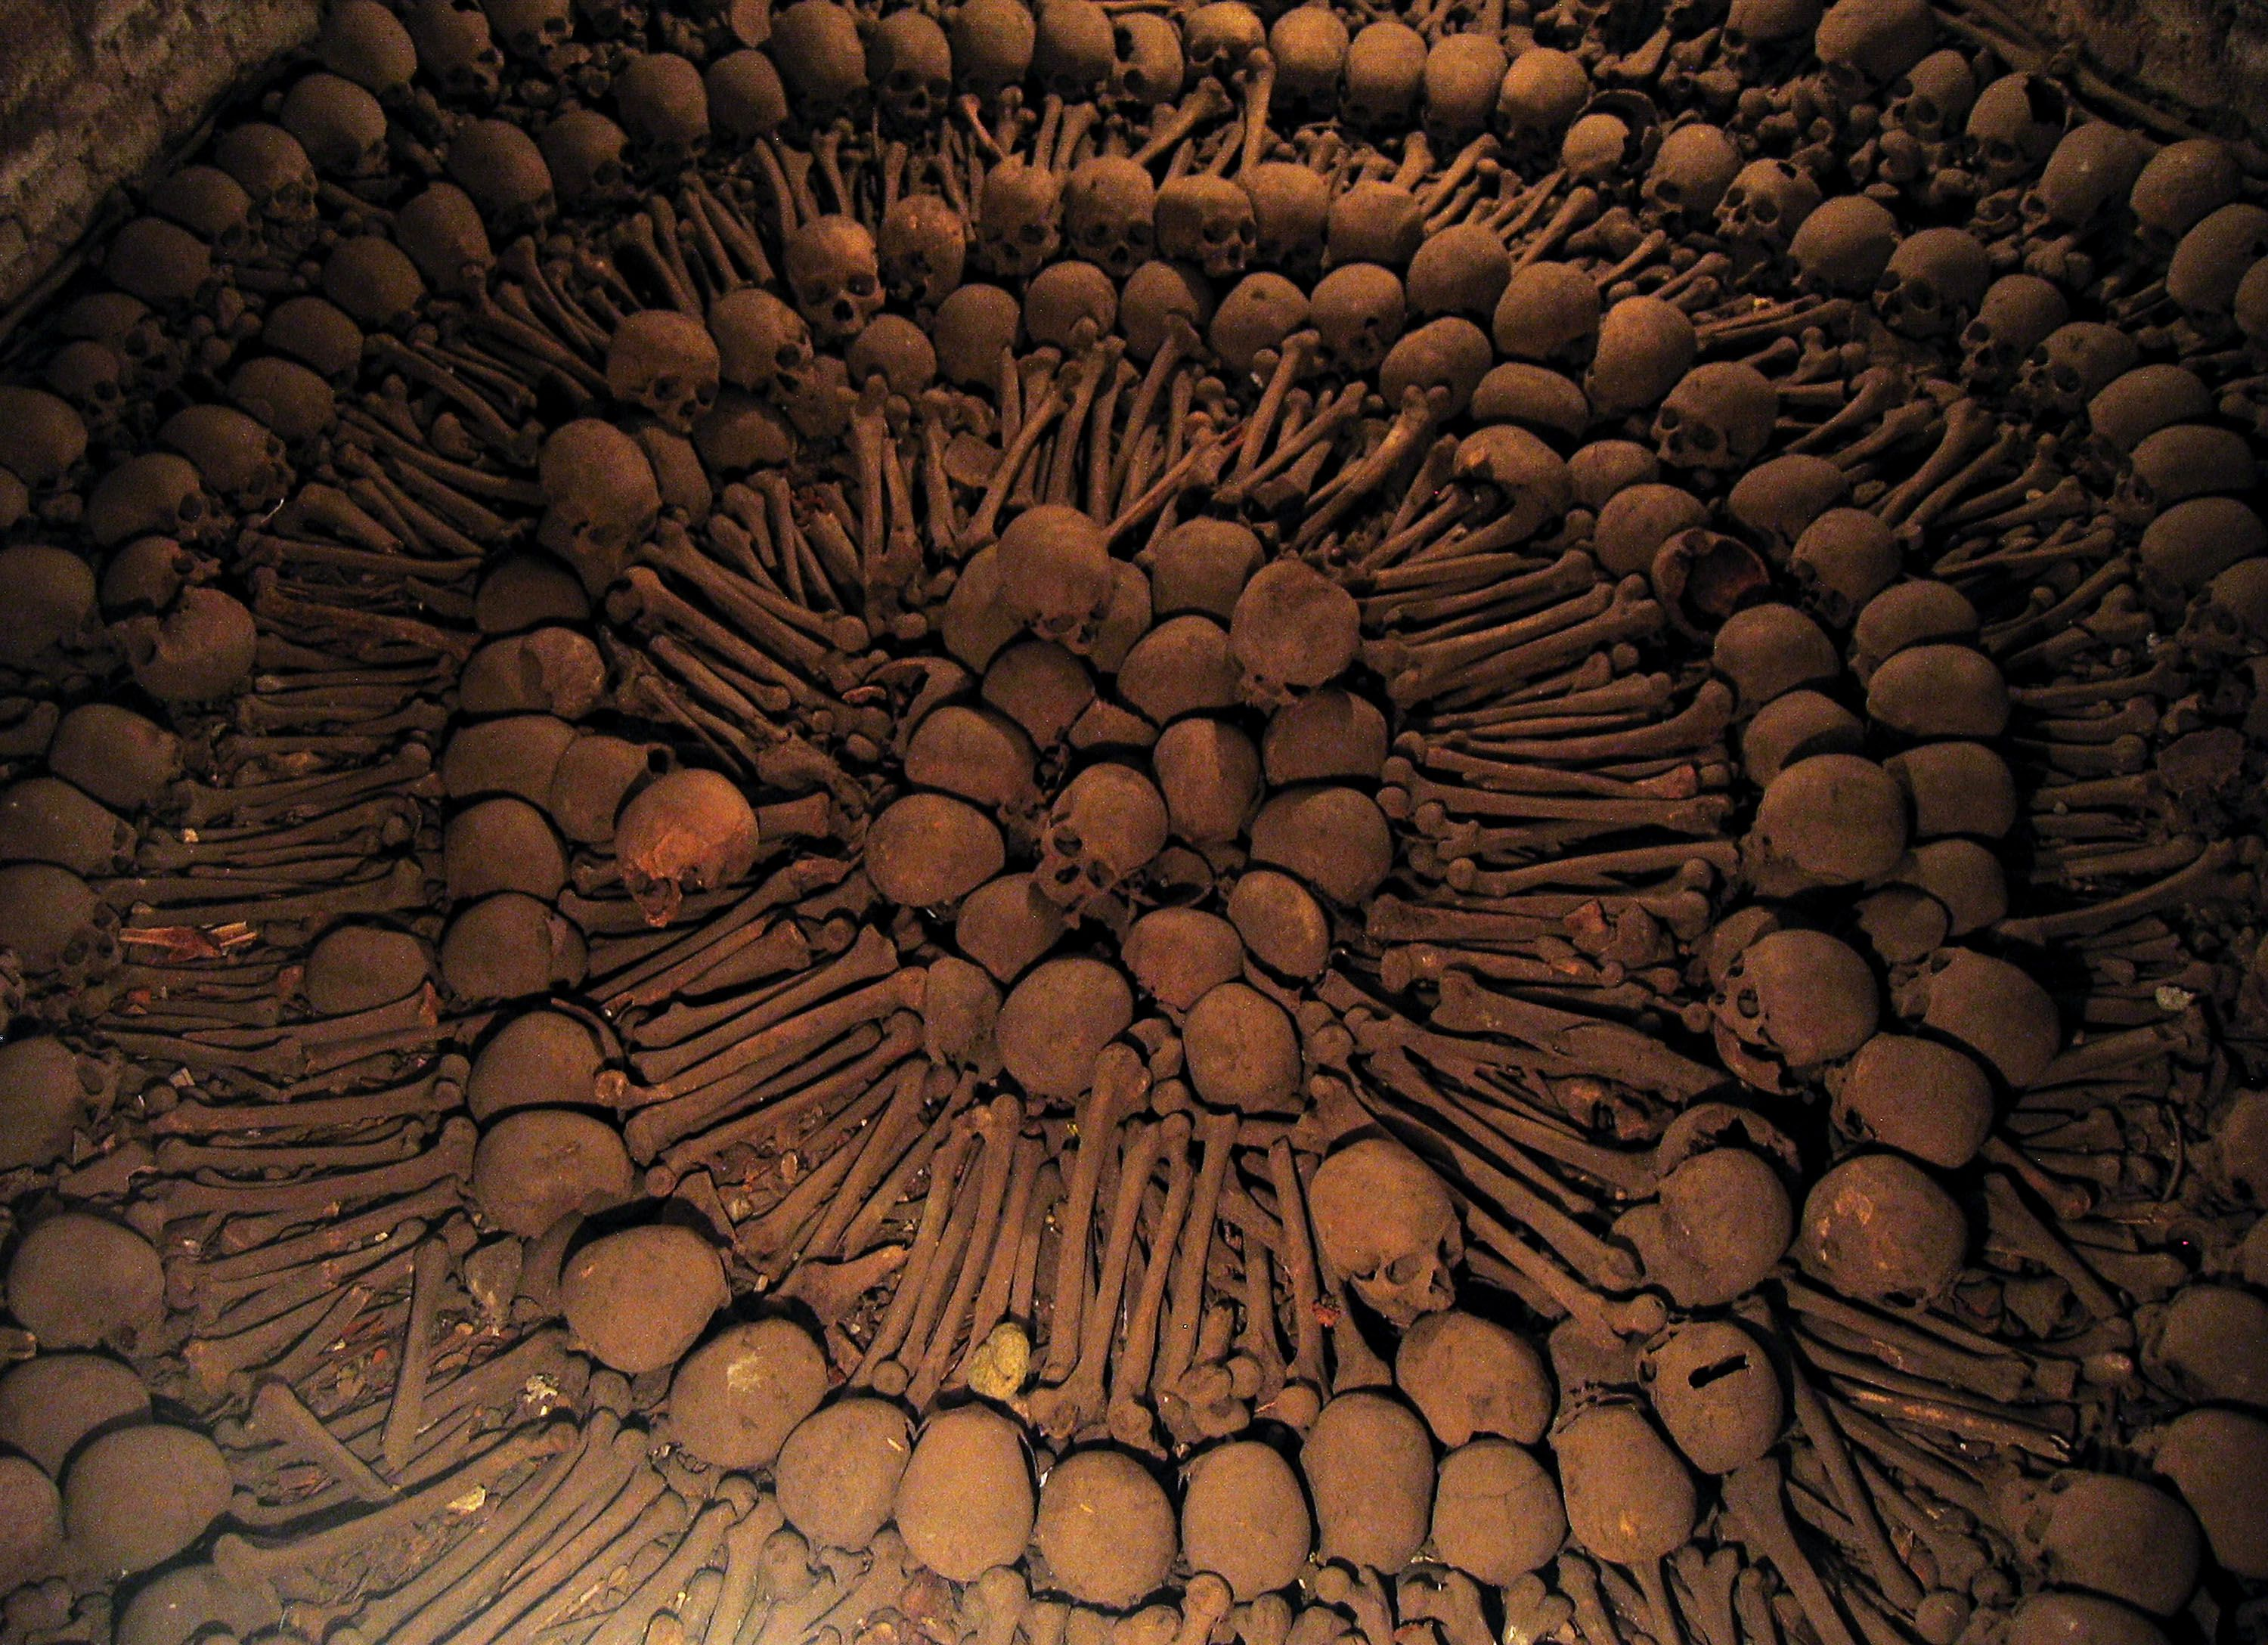 Skulls and bones are arranged in the catacombs beneath the Monastery of San Francisco